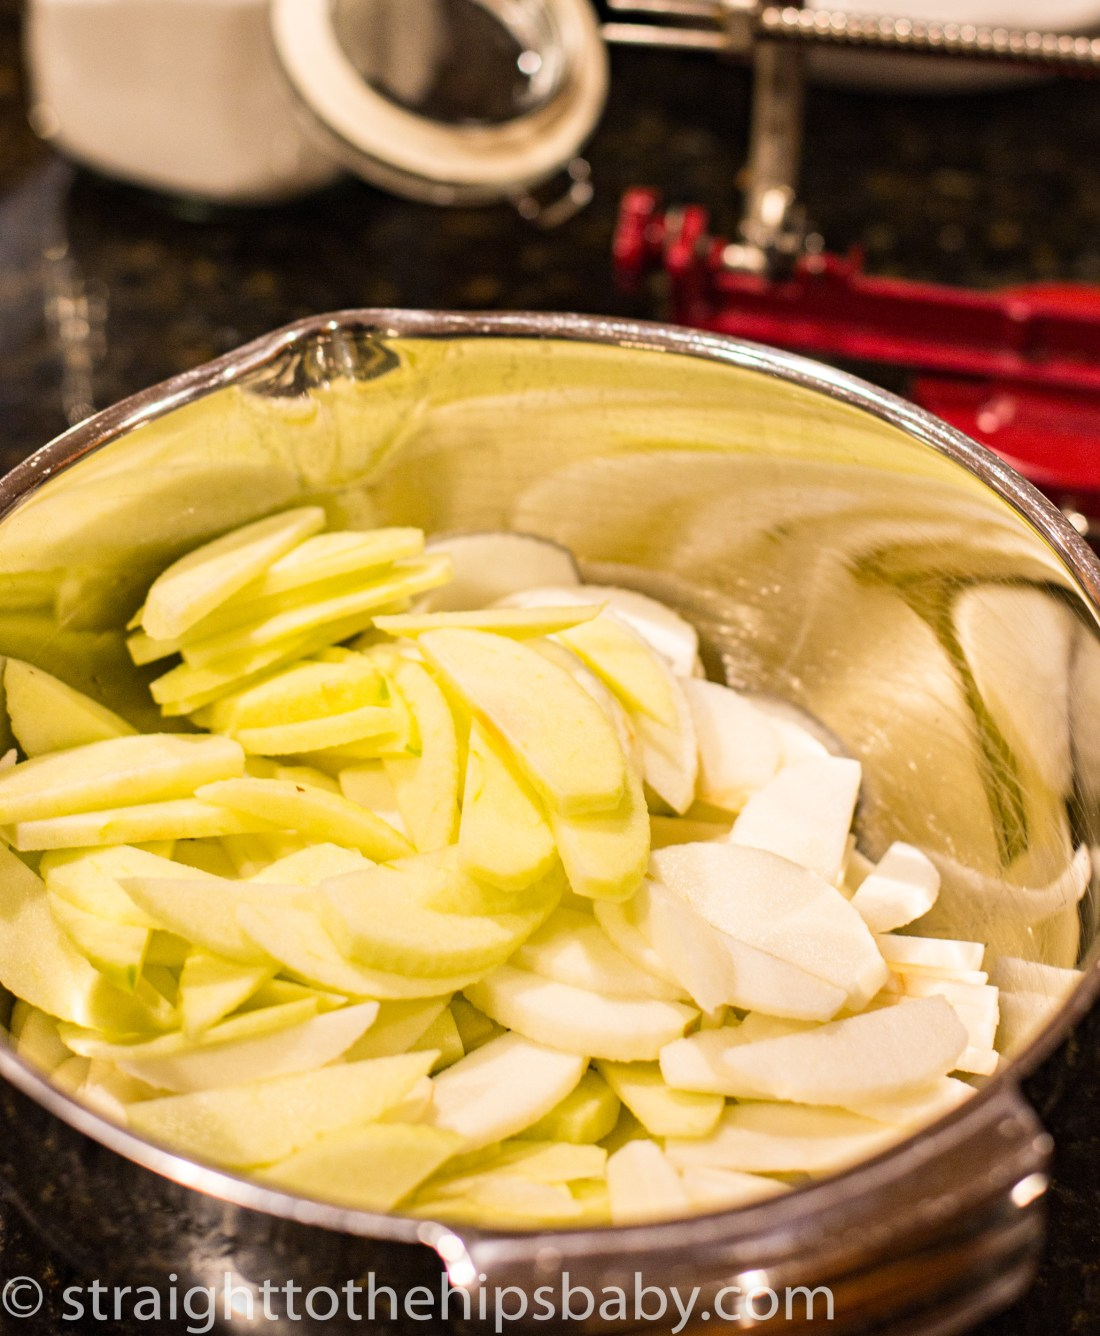 a large metal mixing bowl filled with sliced apples